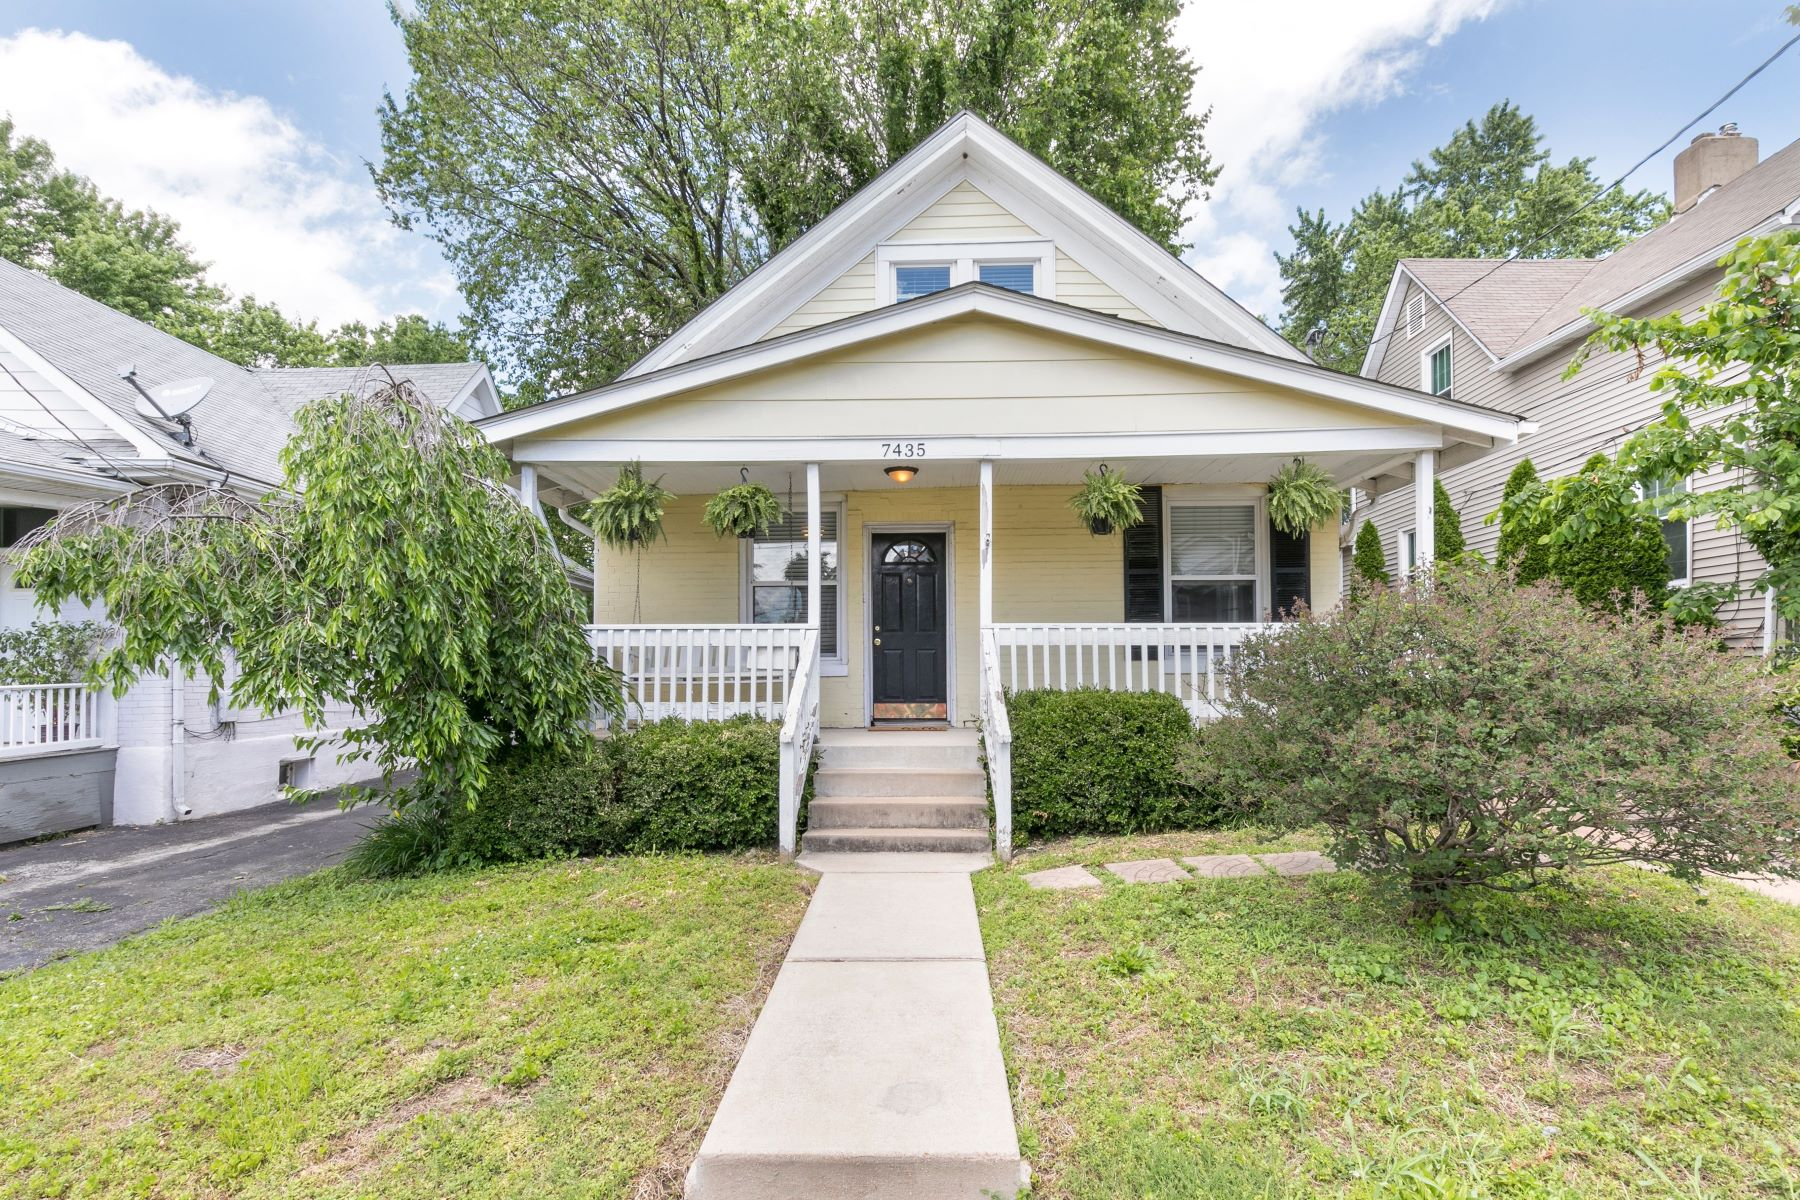 Property for Sale at Adorable Bungalow 7435 Lohmeyer Avenue Maplewood, Missouri 63143 United States